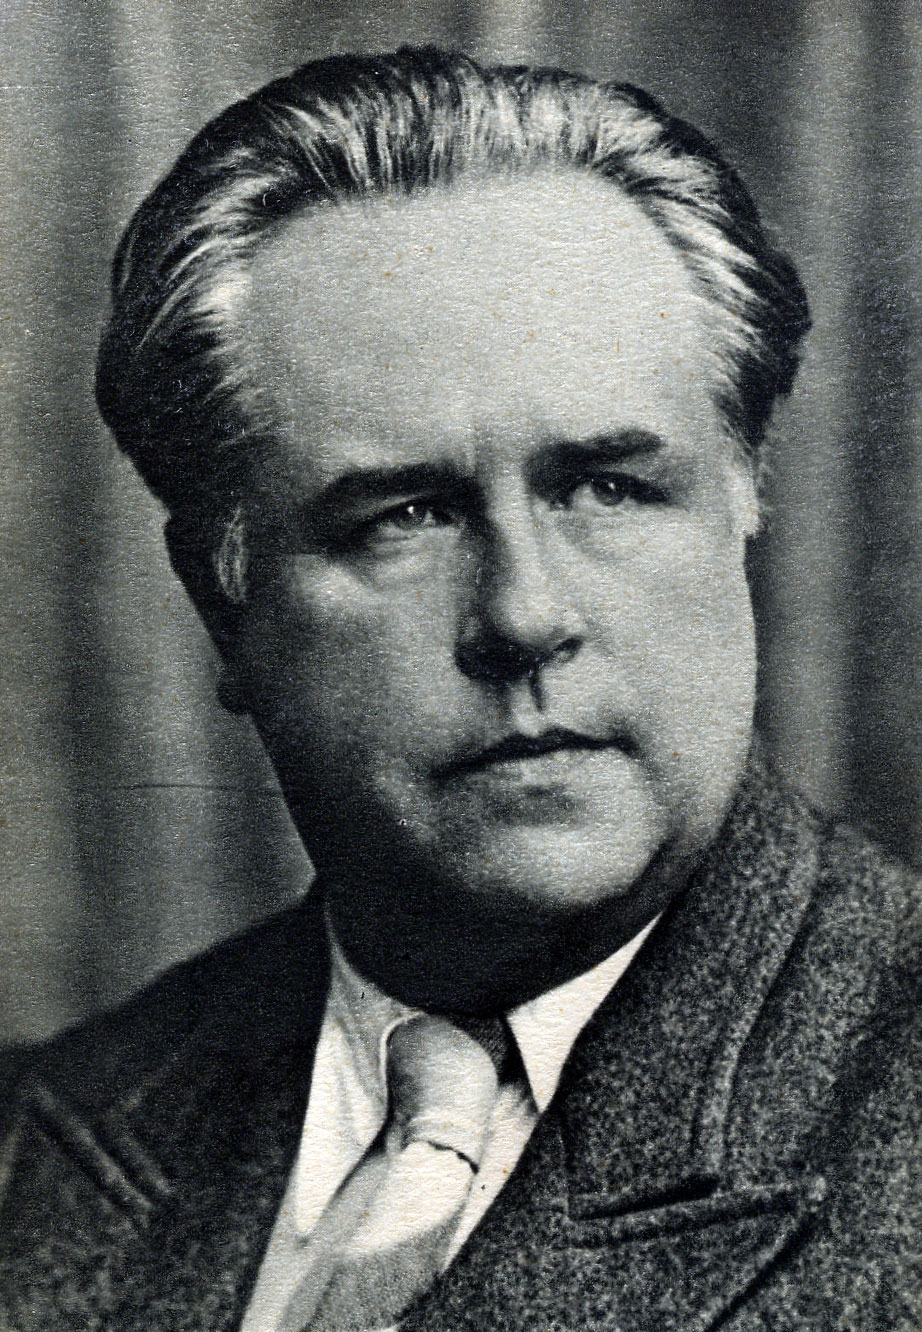 http://fr.academic.ru/pictures/frwiki/80/Paul-Vaillant-Couturier.jpg